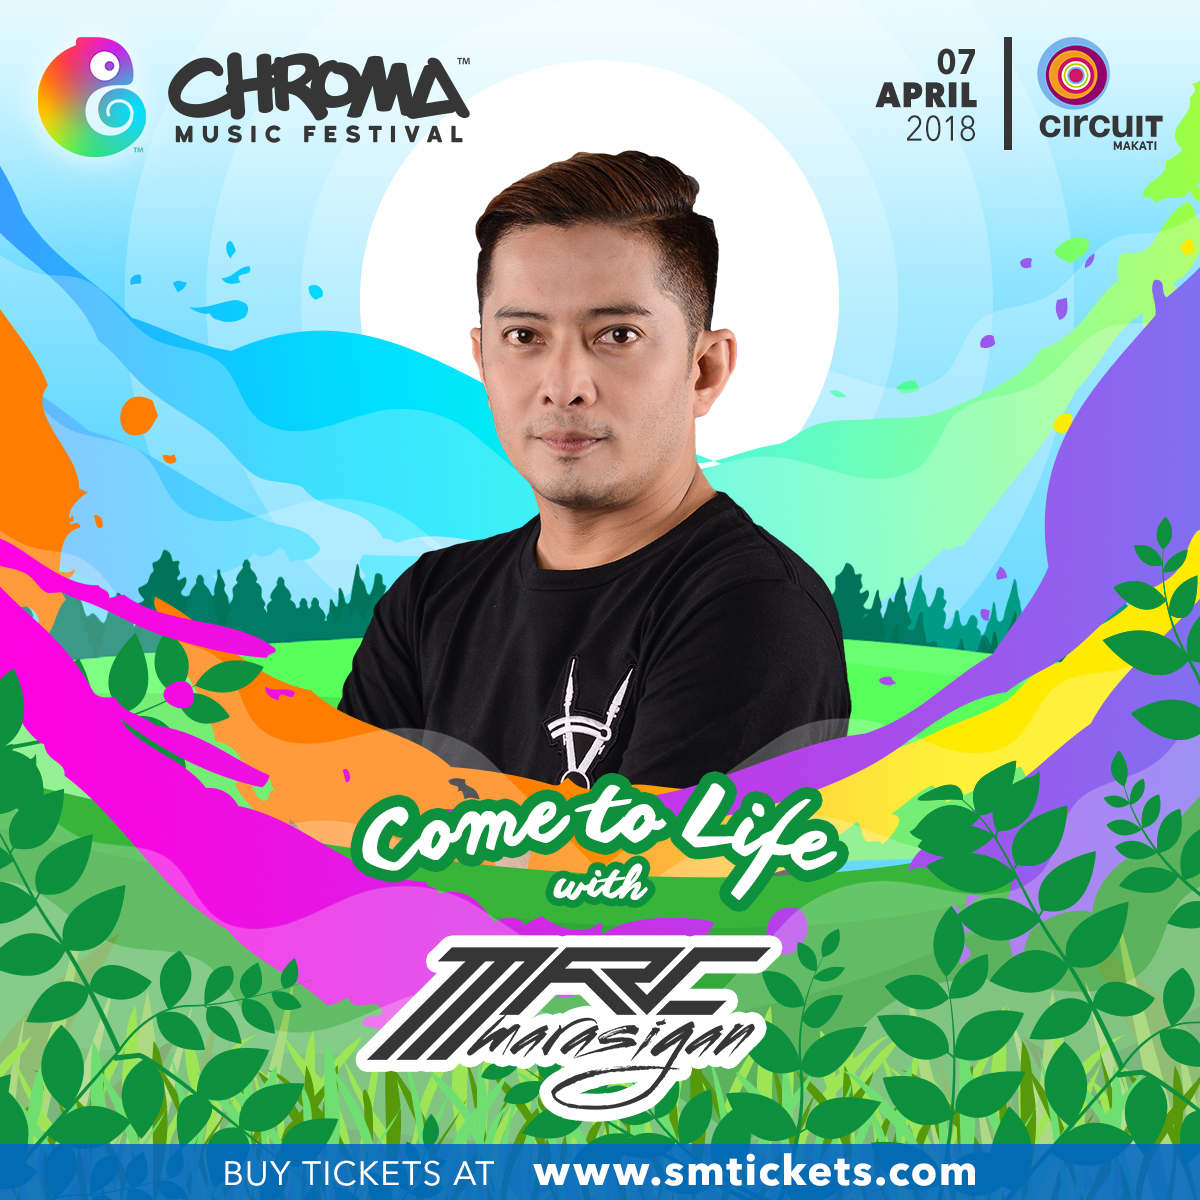 chroma music festival 2018 philippine concerts. Black Bedroom Furniture Sets. Home Design Ideas